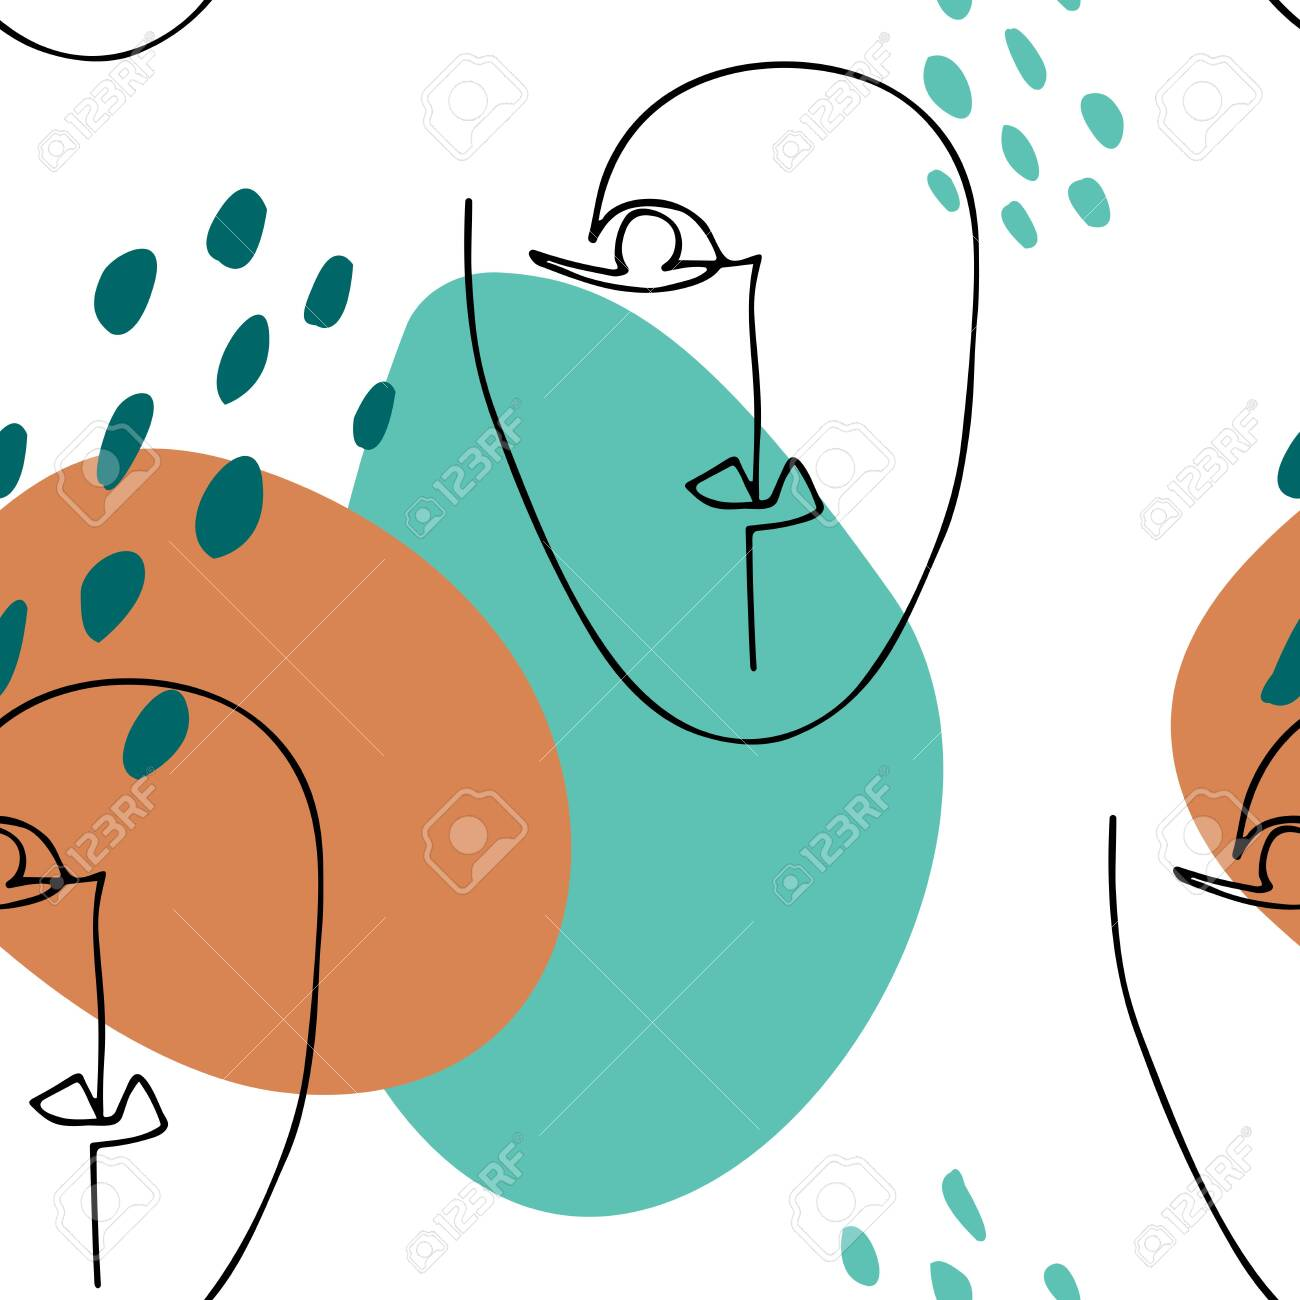 Abstract linear silhouette of human face. Modern poster.Minimalism graphic style. Seamless pattern with overlapping circles and faces - 124150890